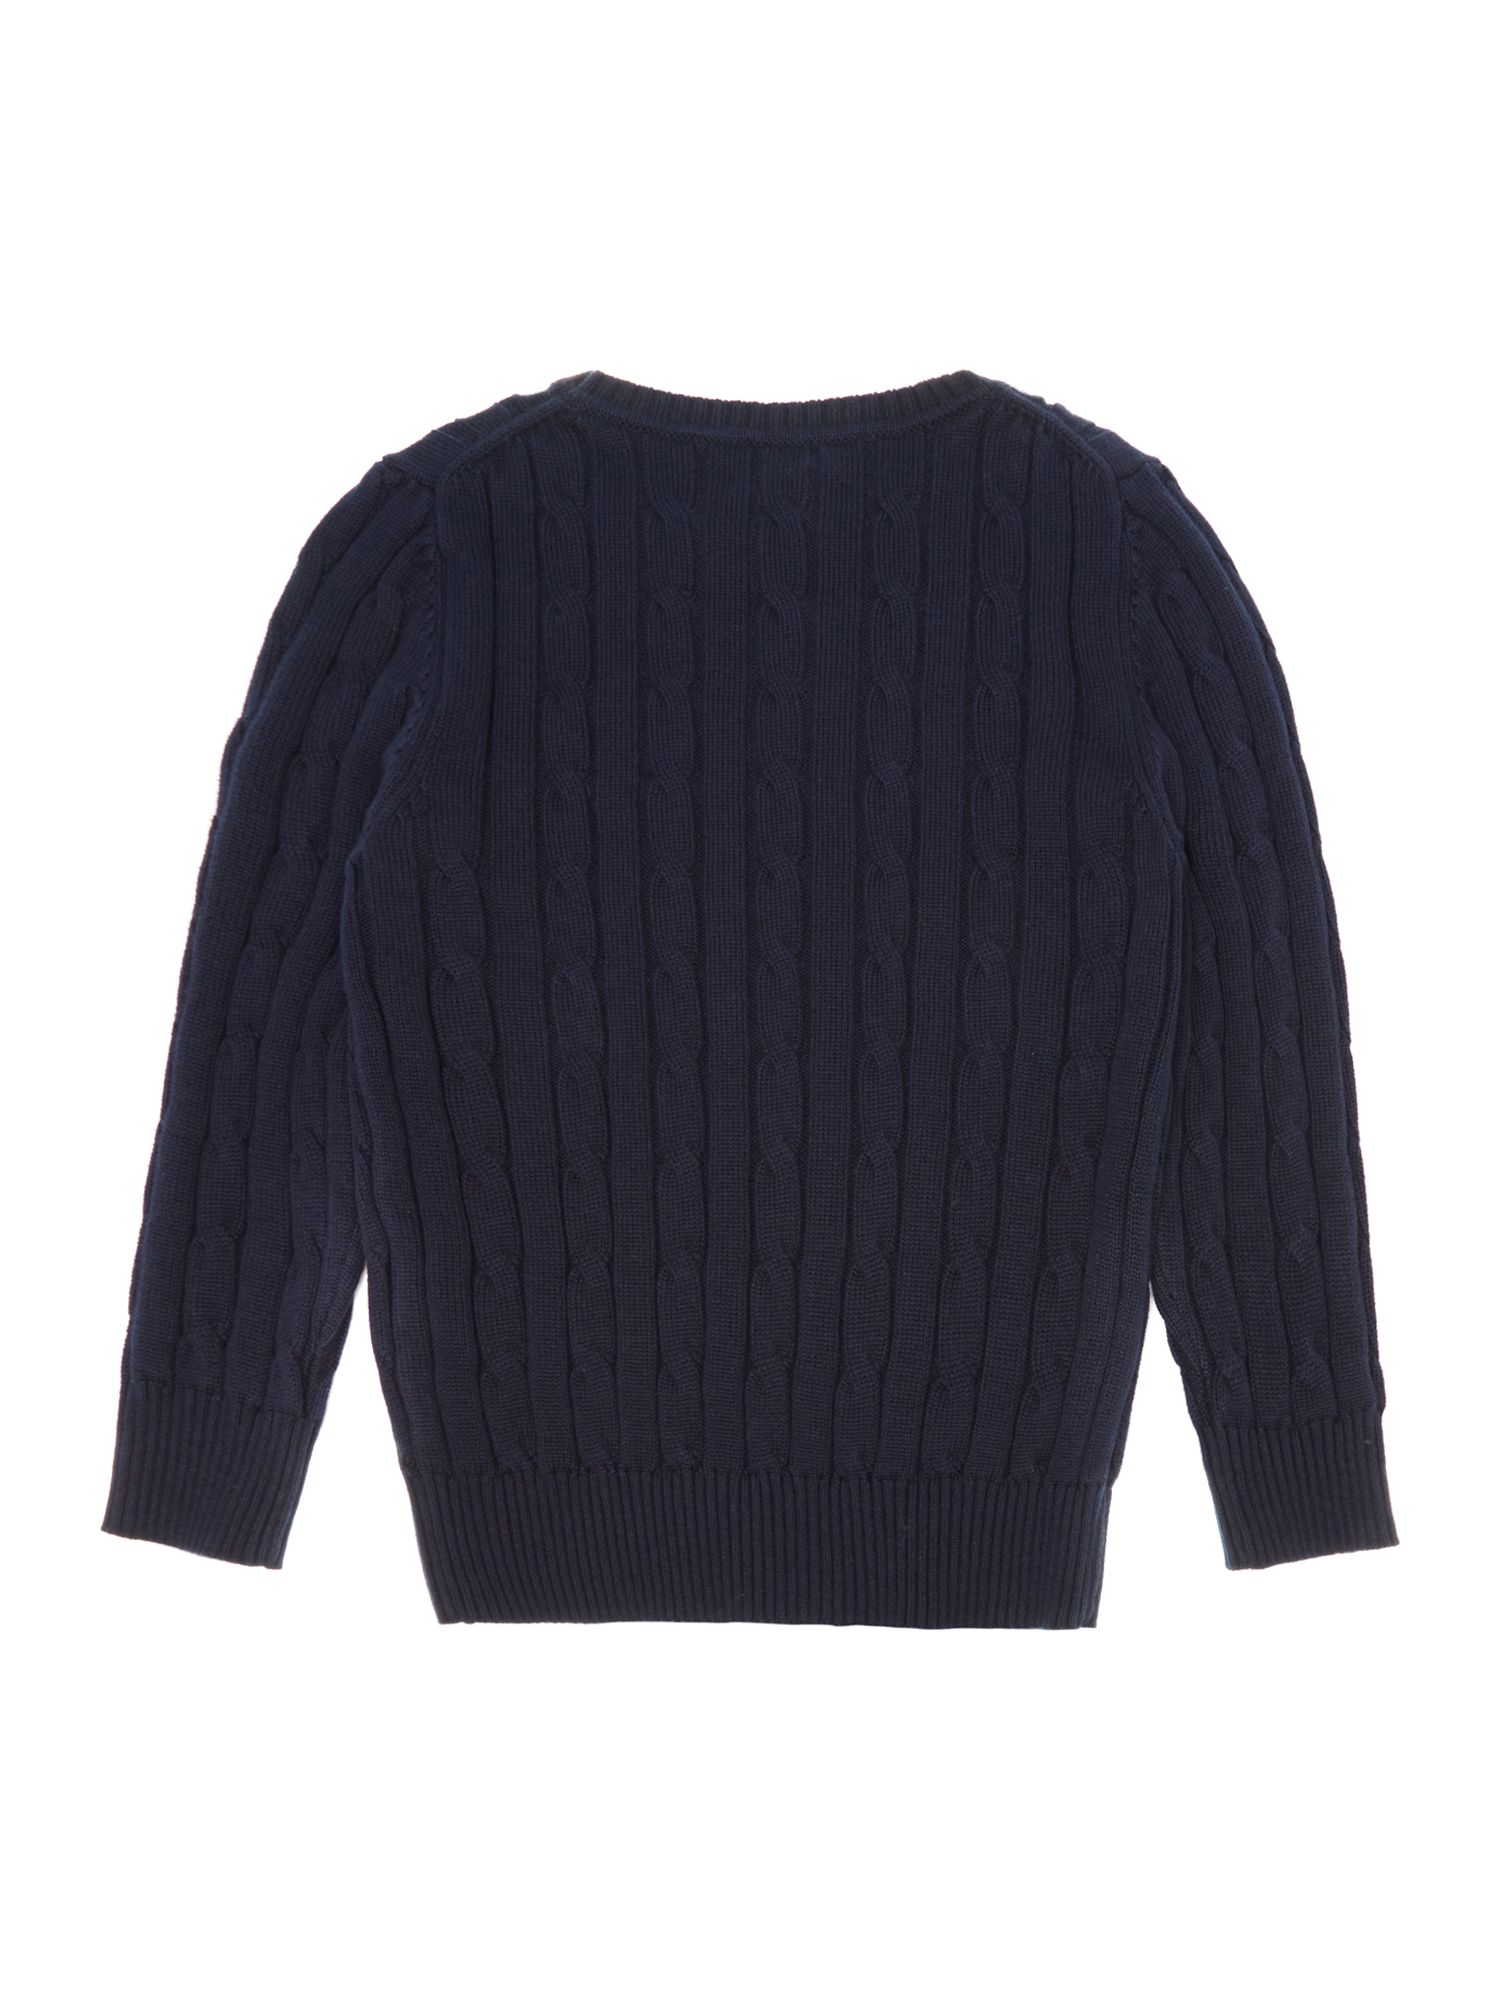 Boys V-neck cable jumper